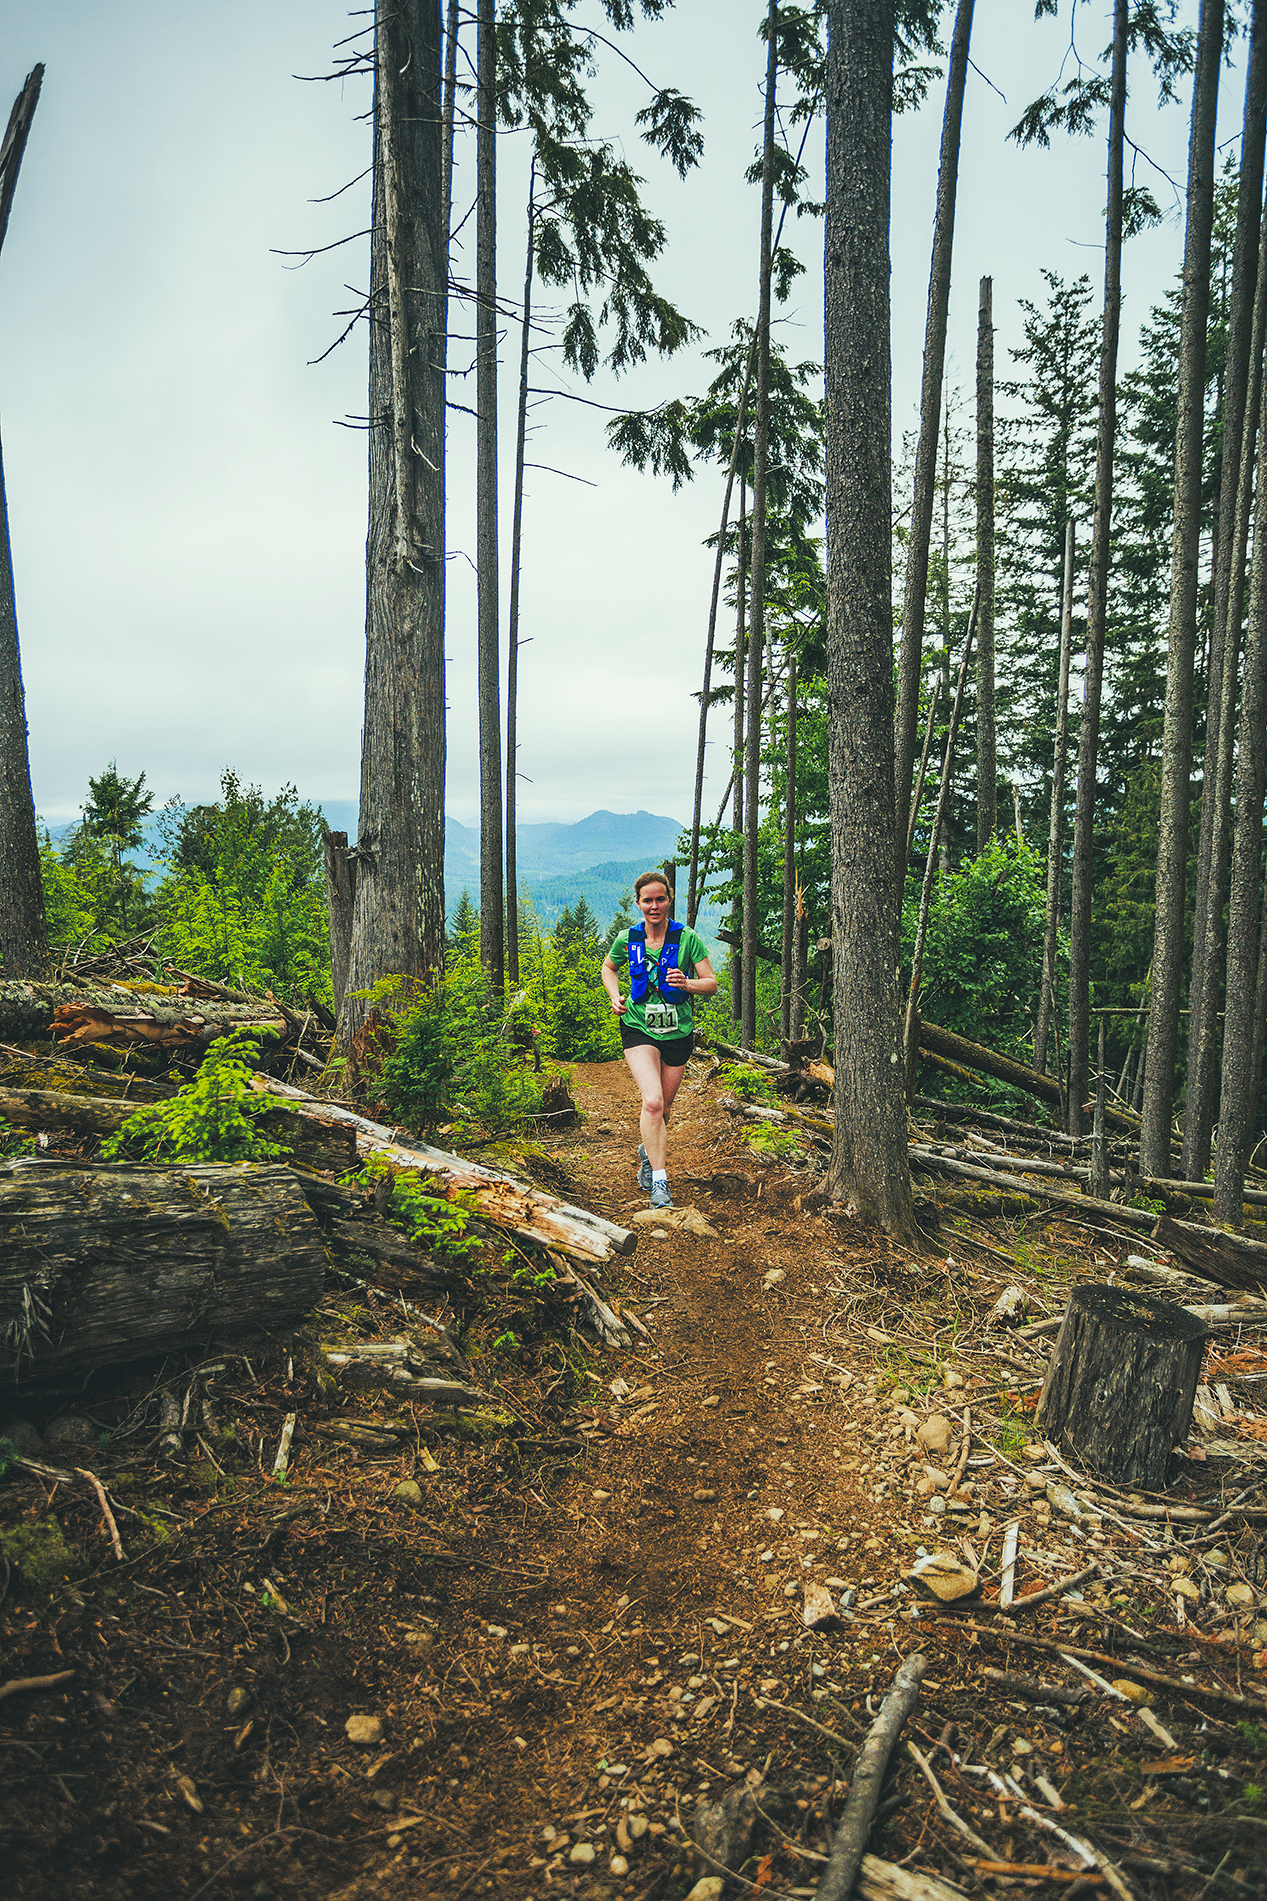 Fraser Valley Trail Races - Bear Mountain - IMG_2644 by Brice Ferre Studio - Vancouver Portrait Adventure and Athlete Photographer.jpg